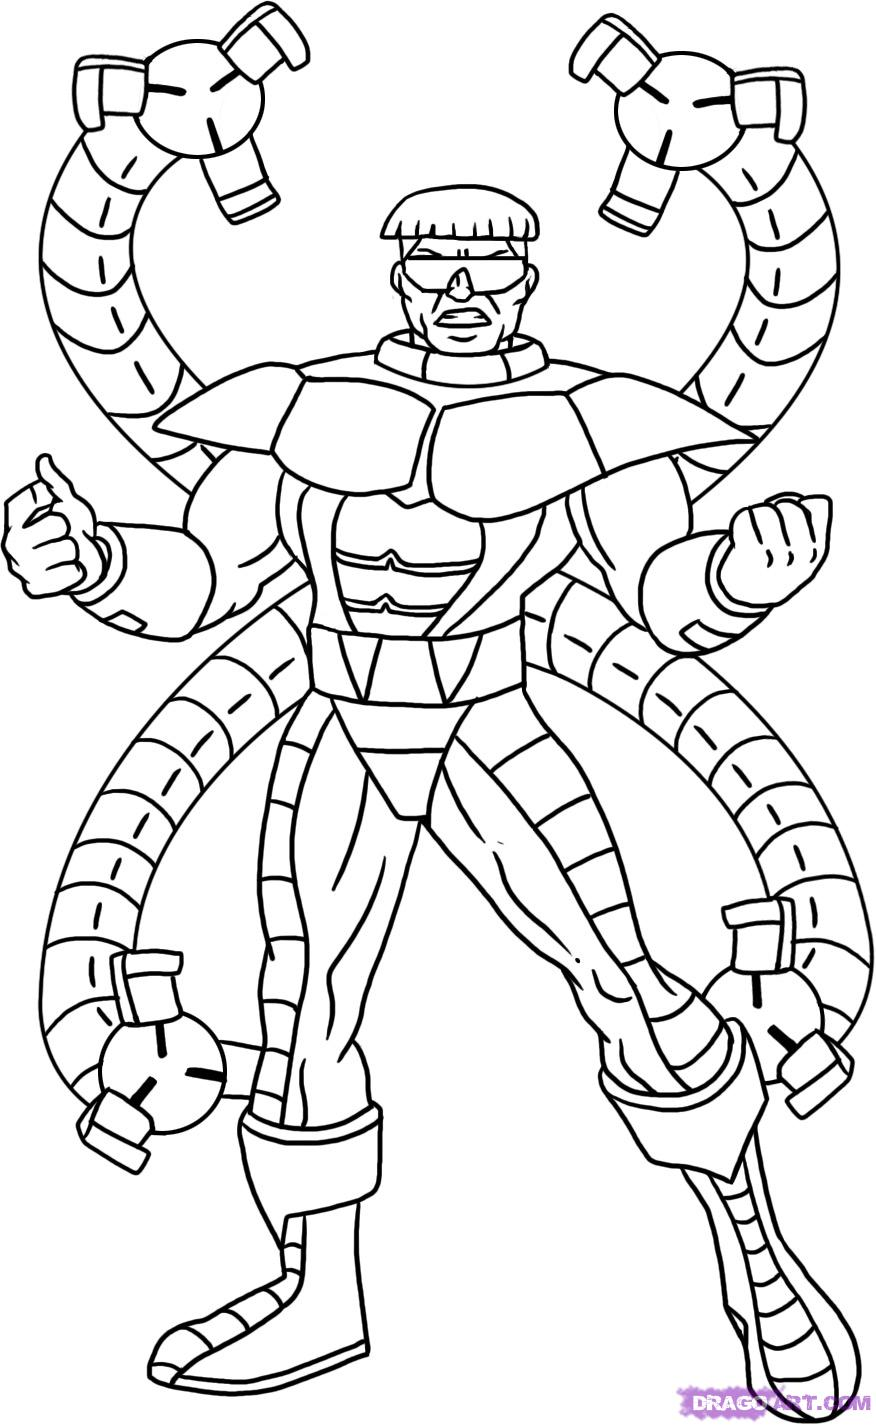 marvel coloring pictures avengers coloring pages best coloring pages for kids marvel pictures coloring